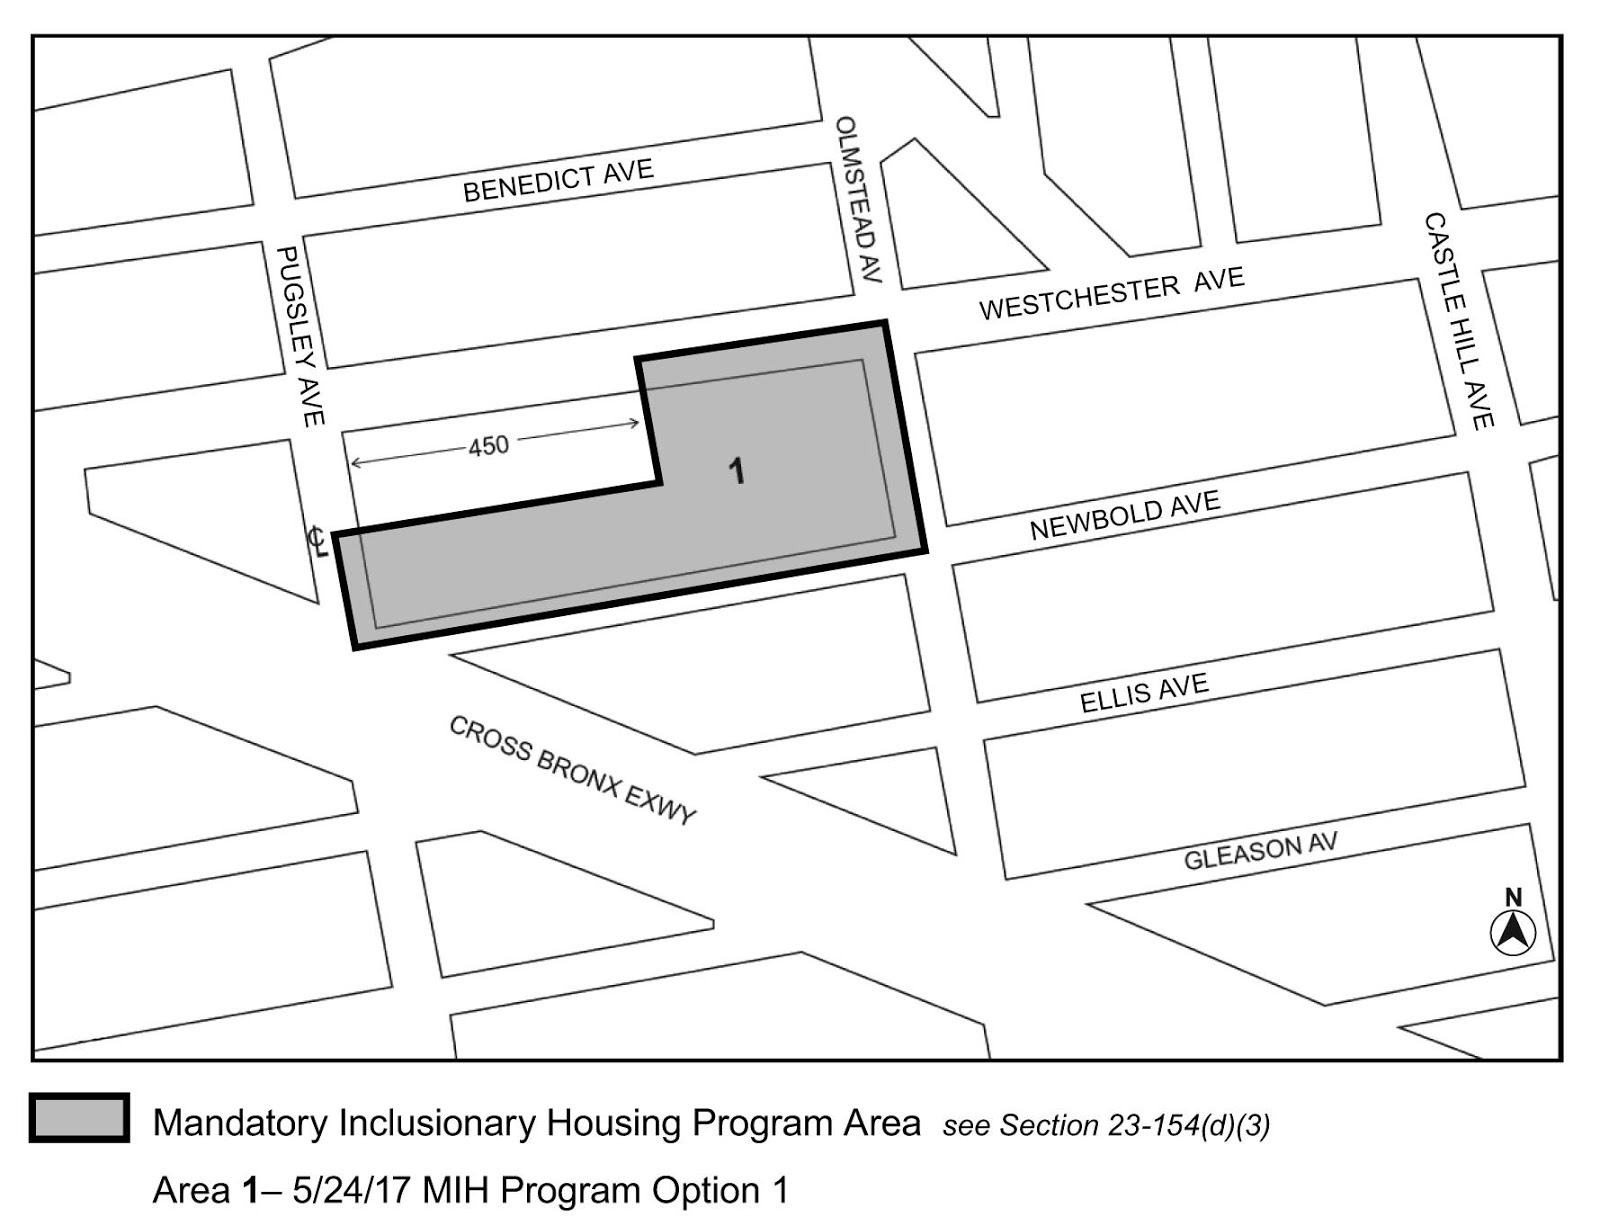 Zoning Resolutions F-Inclusionary Housing Designated Areas and Mandatory Inclusionary Housing Areas_2.27